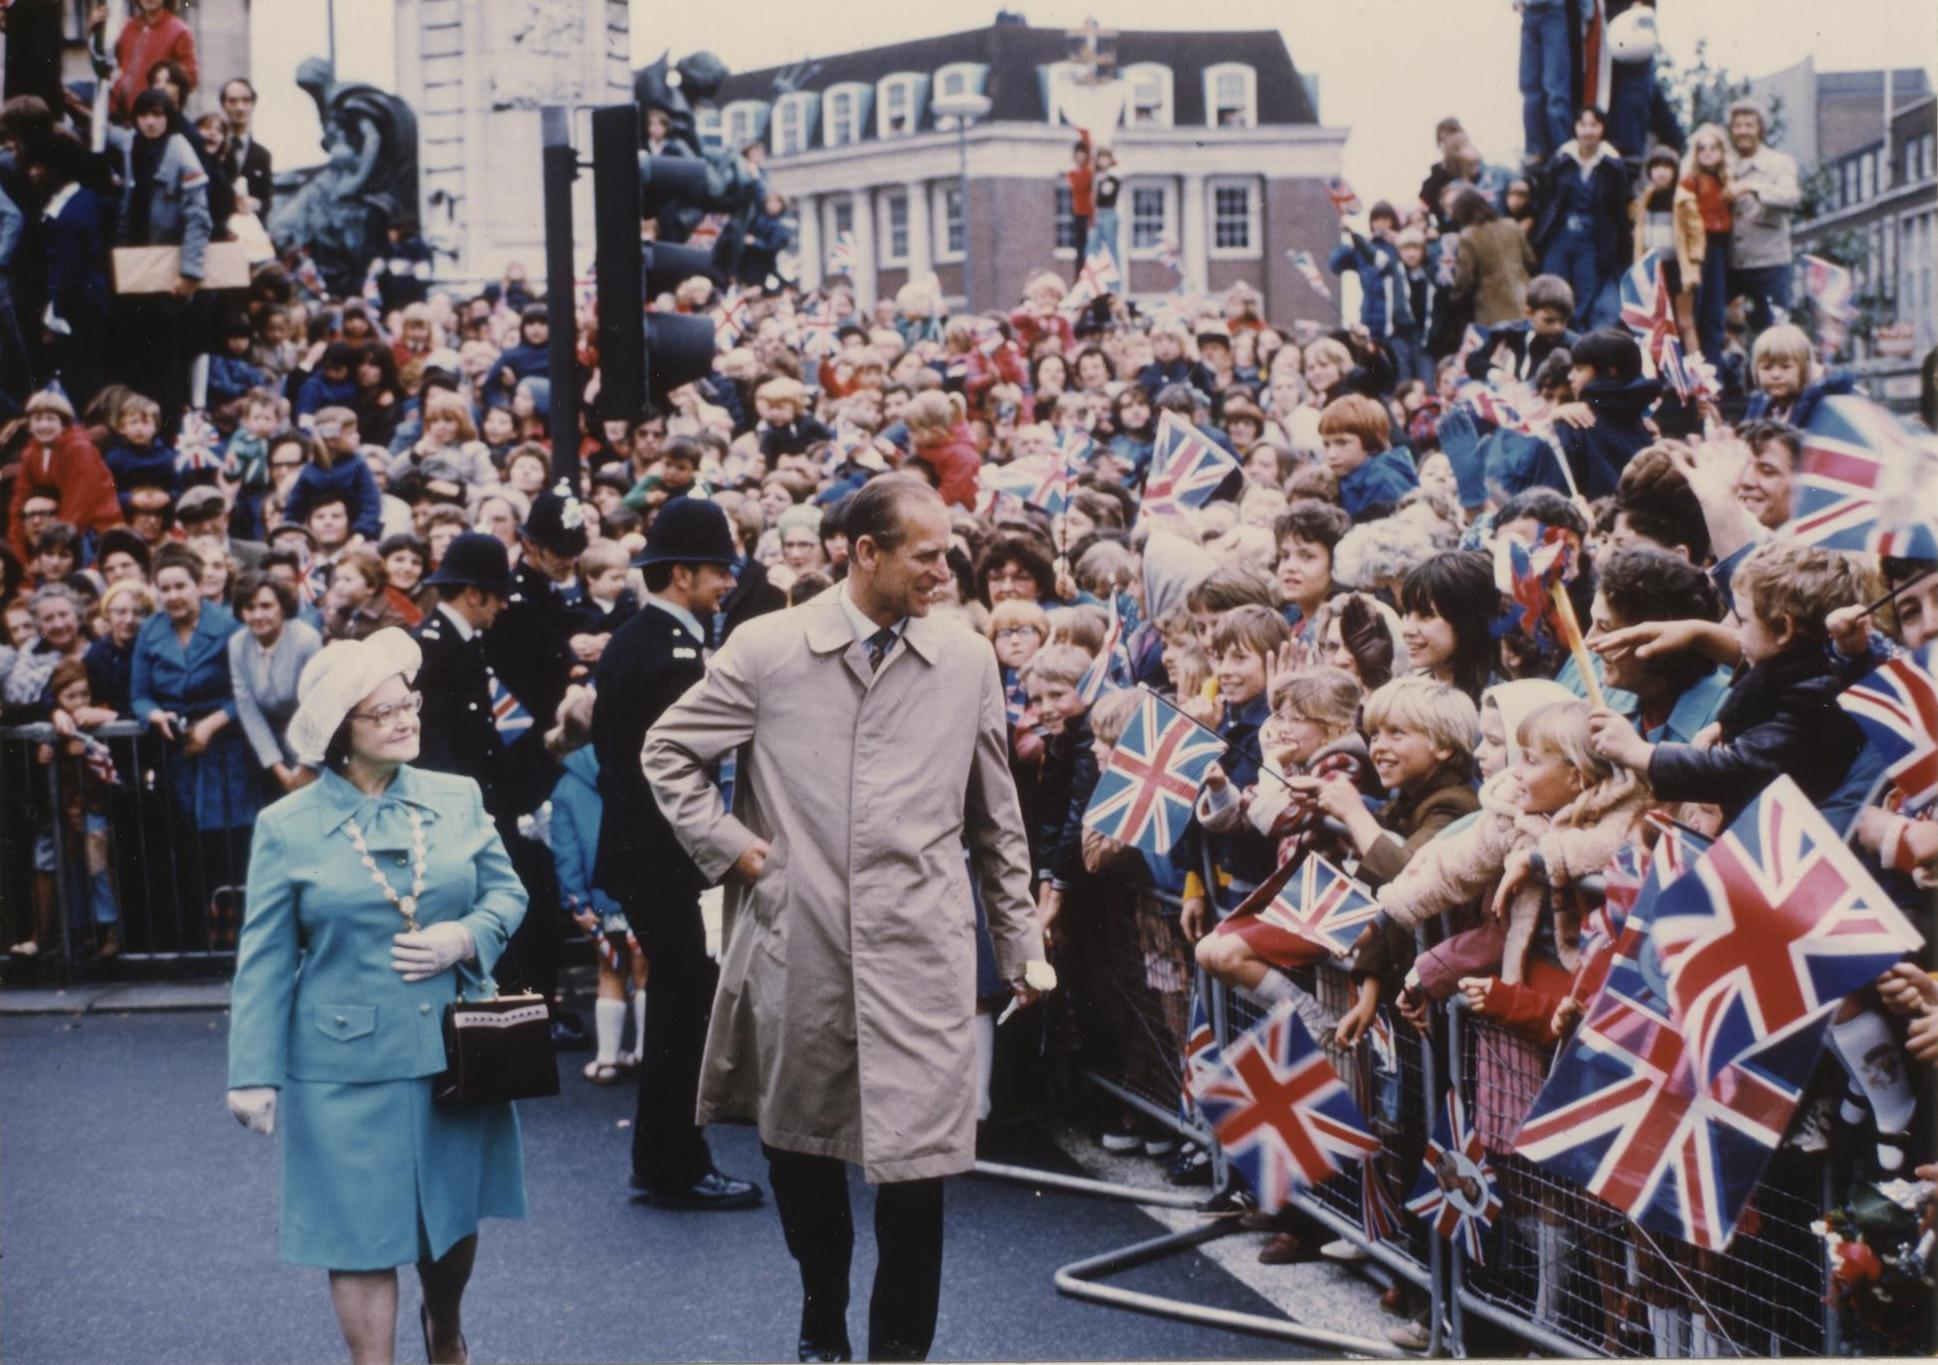 Arrival at City Square, Hull, HRH Prince Philip and The Lady Mayoress Mrs E Kirkwood 13th July 1977 (archive ref CCHU-4-1-9-2)